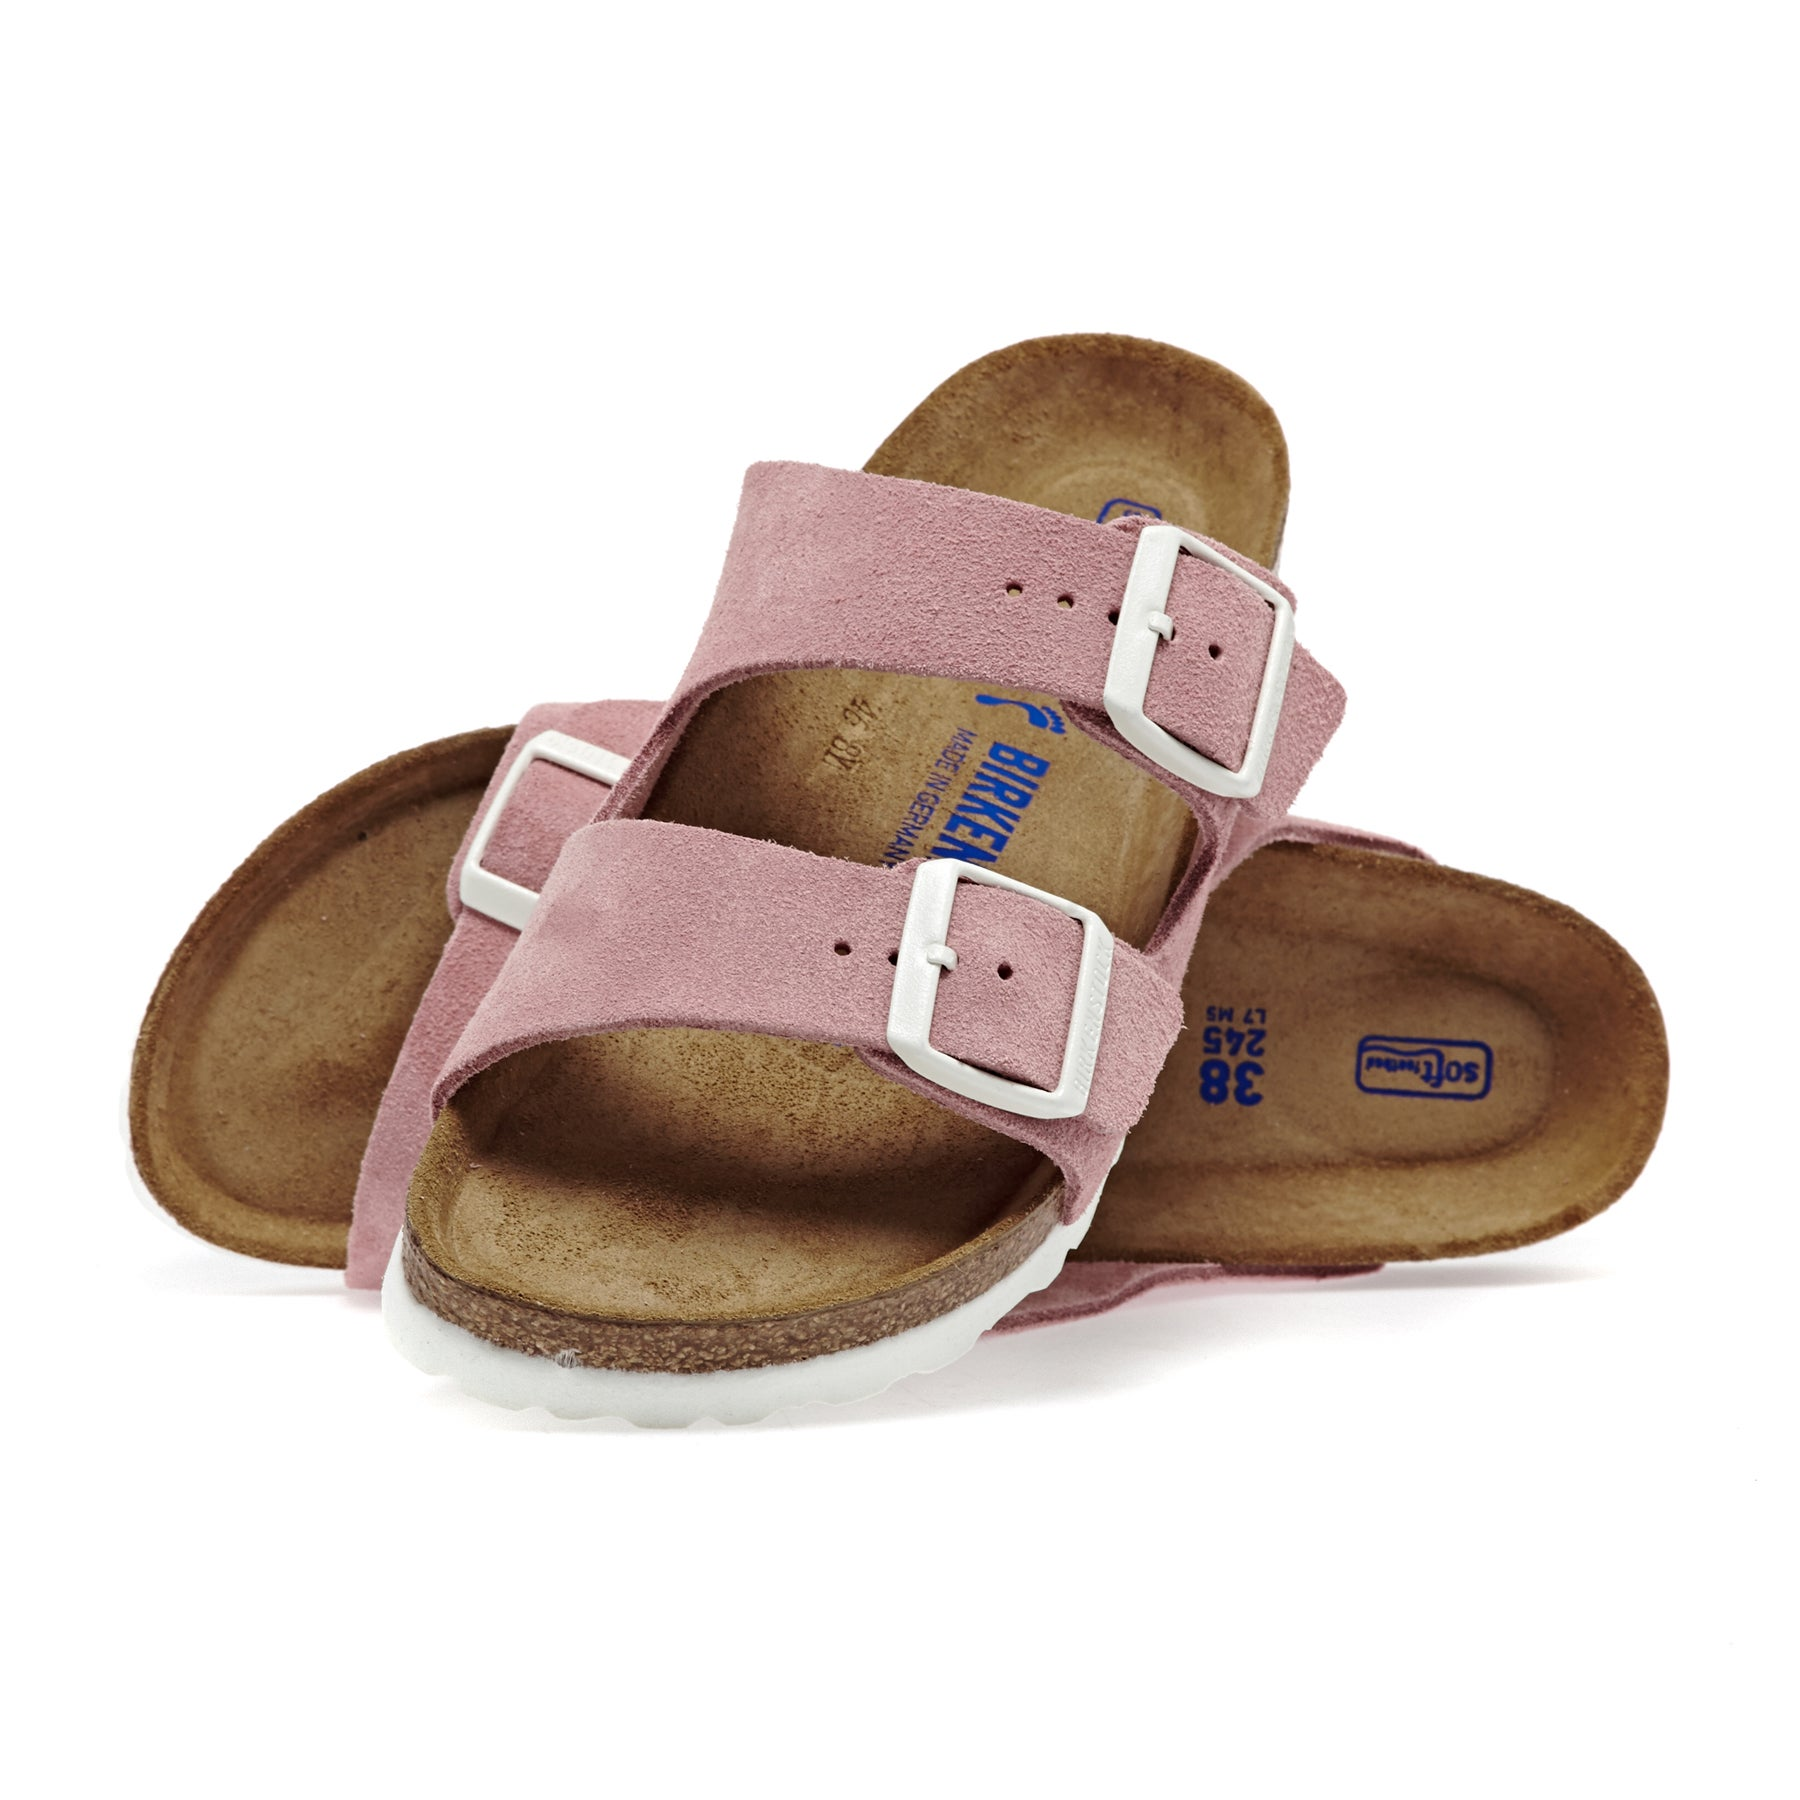 Birkenstock Arizona Suede Leather Soft Footbed Narrow Womens Sandals - Rose